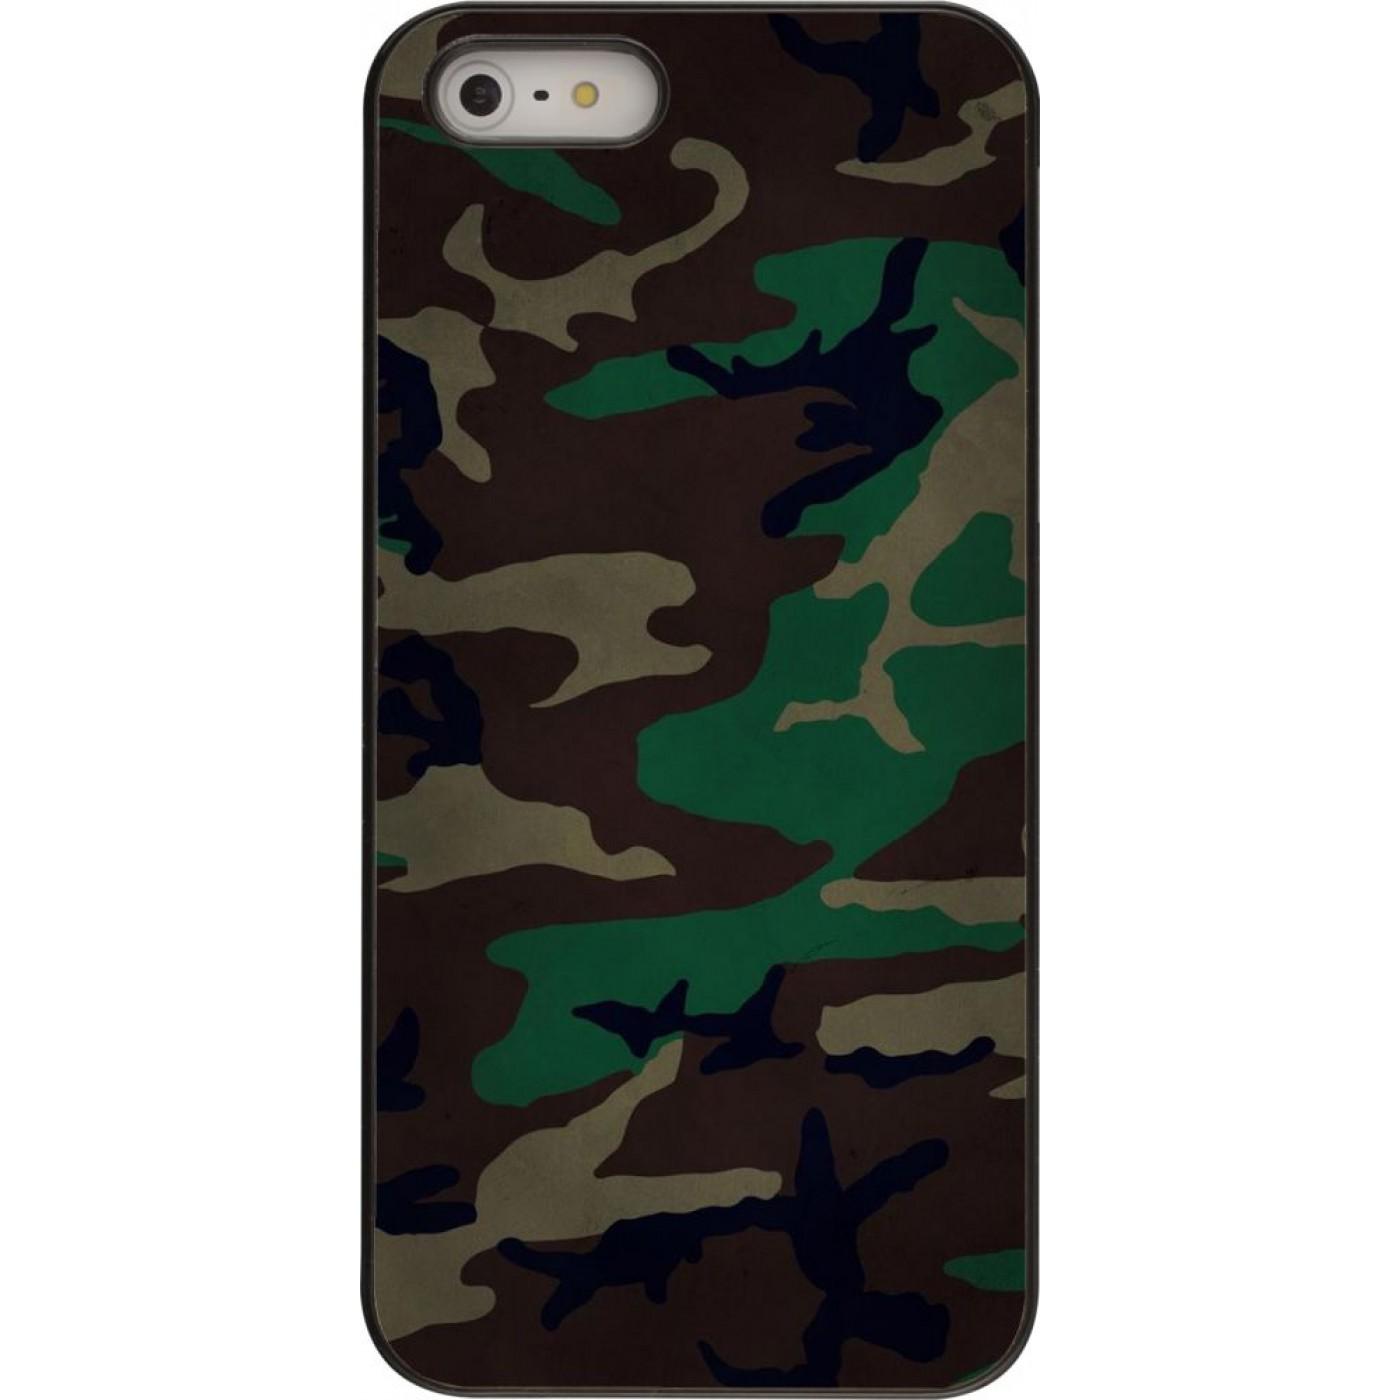 h lle iphone 5 5s se camouflage 3. Black Bedroom Furniture Sets. Home Design Ideas